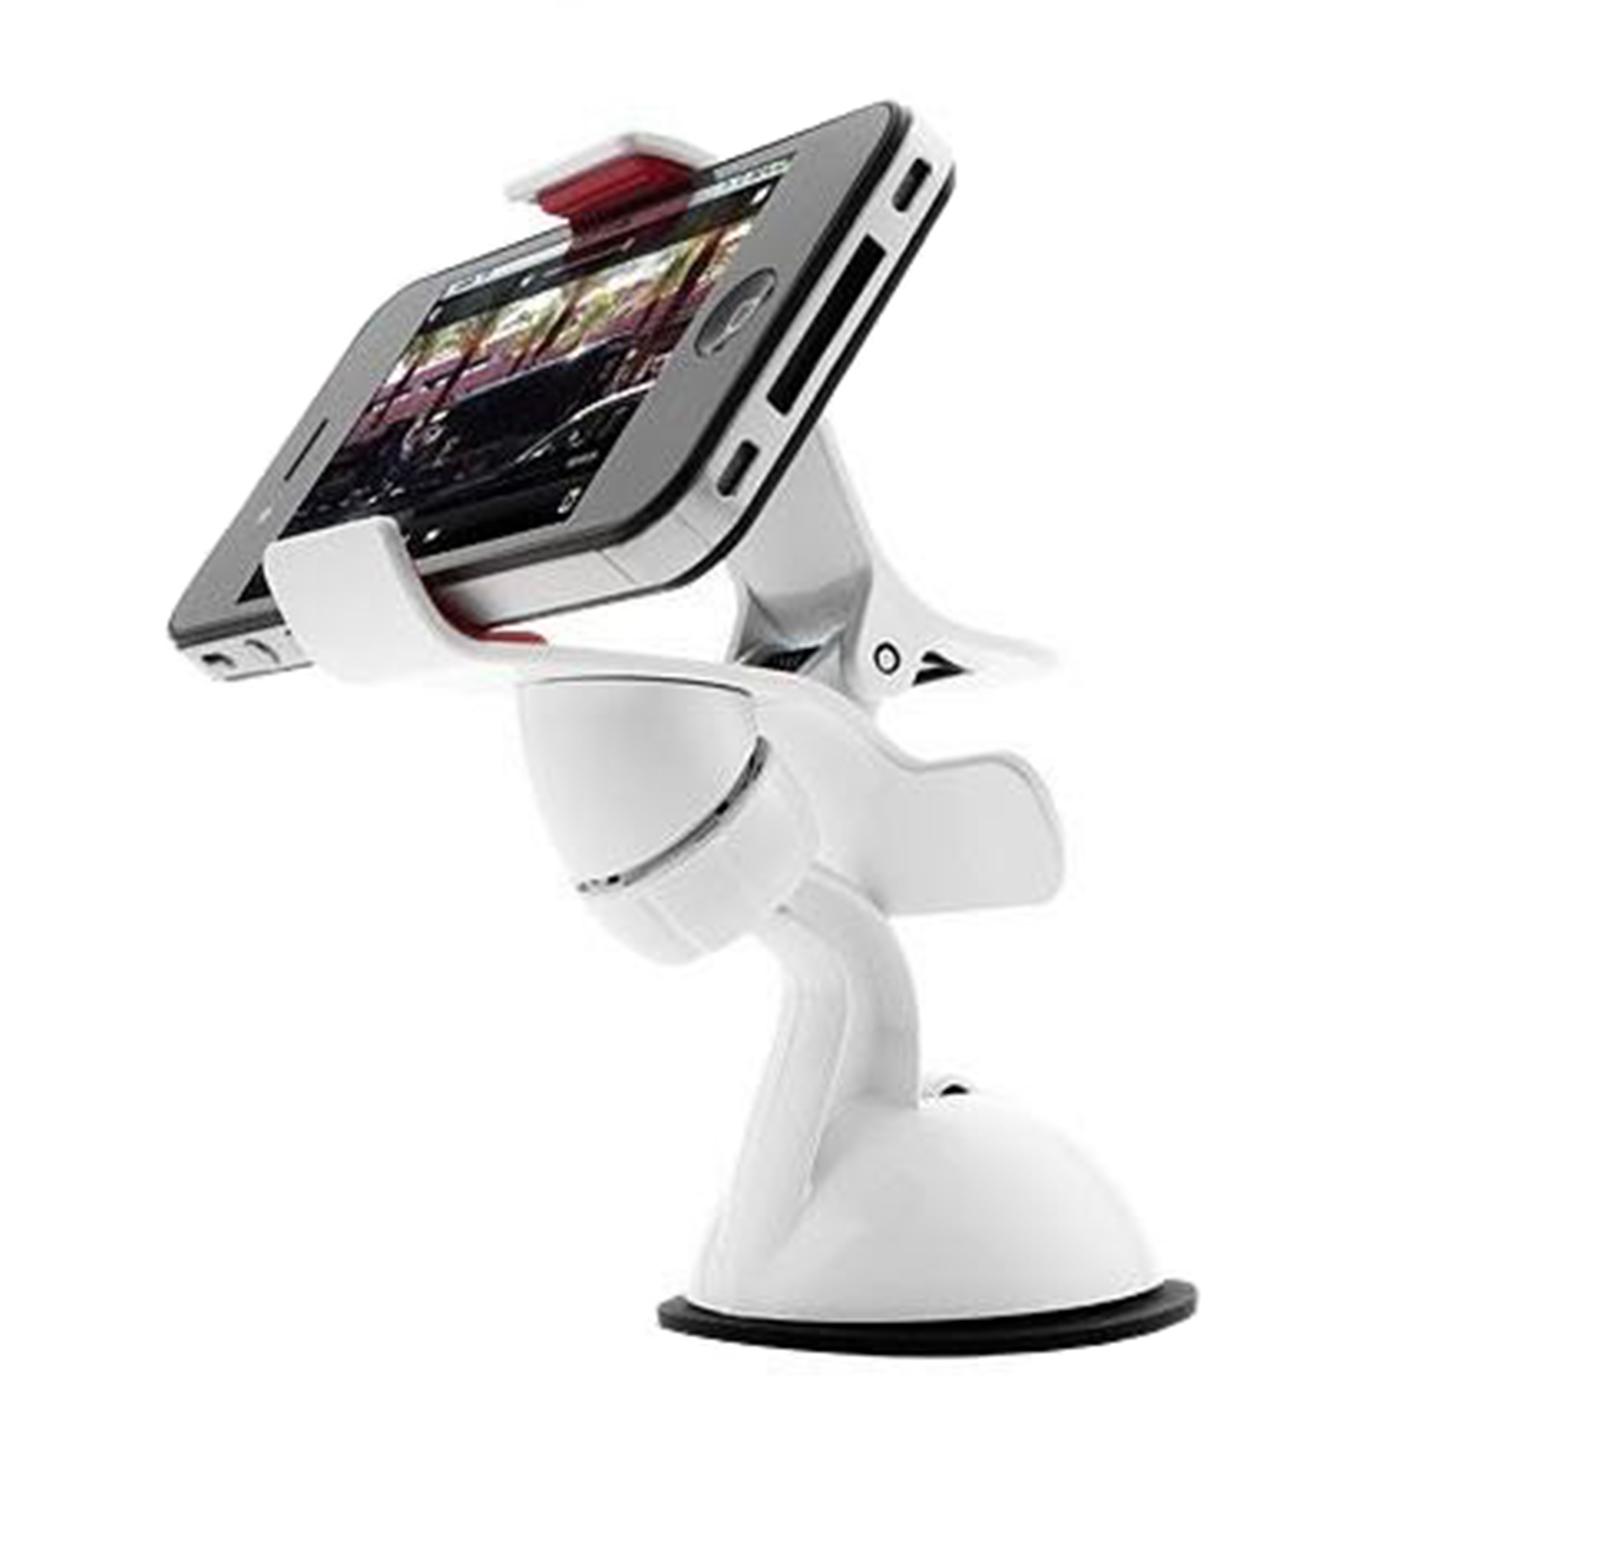 PDA-In-Car-Windscreen-Suction-Mount-Holder-Cradle-Stand-for-Universal-Phones